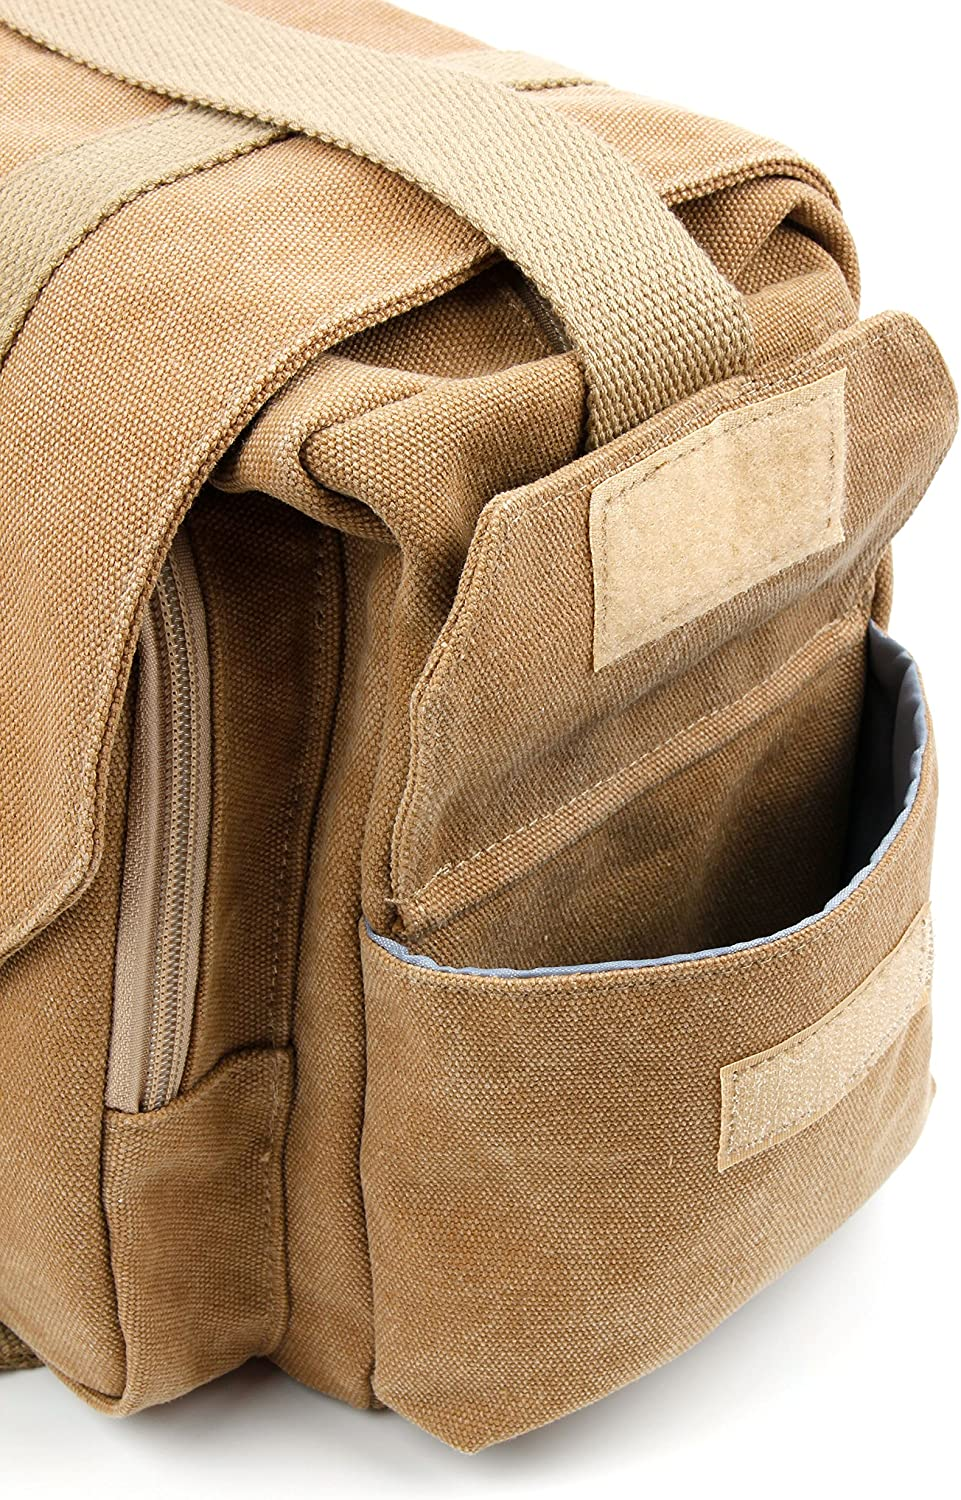 Compatible with JBL GO 2 Link 10 Charge 3 Special Edition Clip 2 Special Edition DURAGADGET Large Tan-Brown Canvas Carry Bag Flip 4 Special Edition 20 /& 300 GO